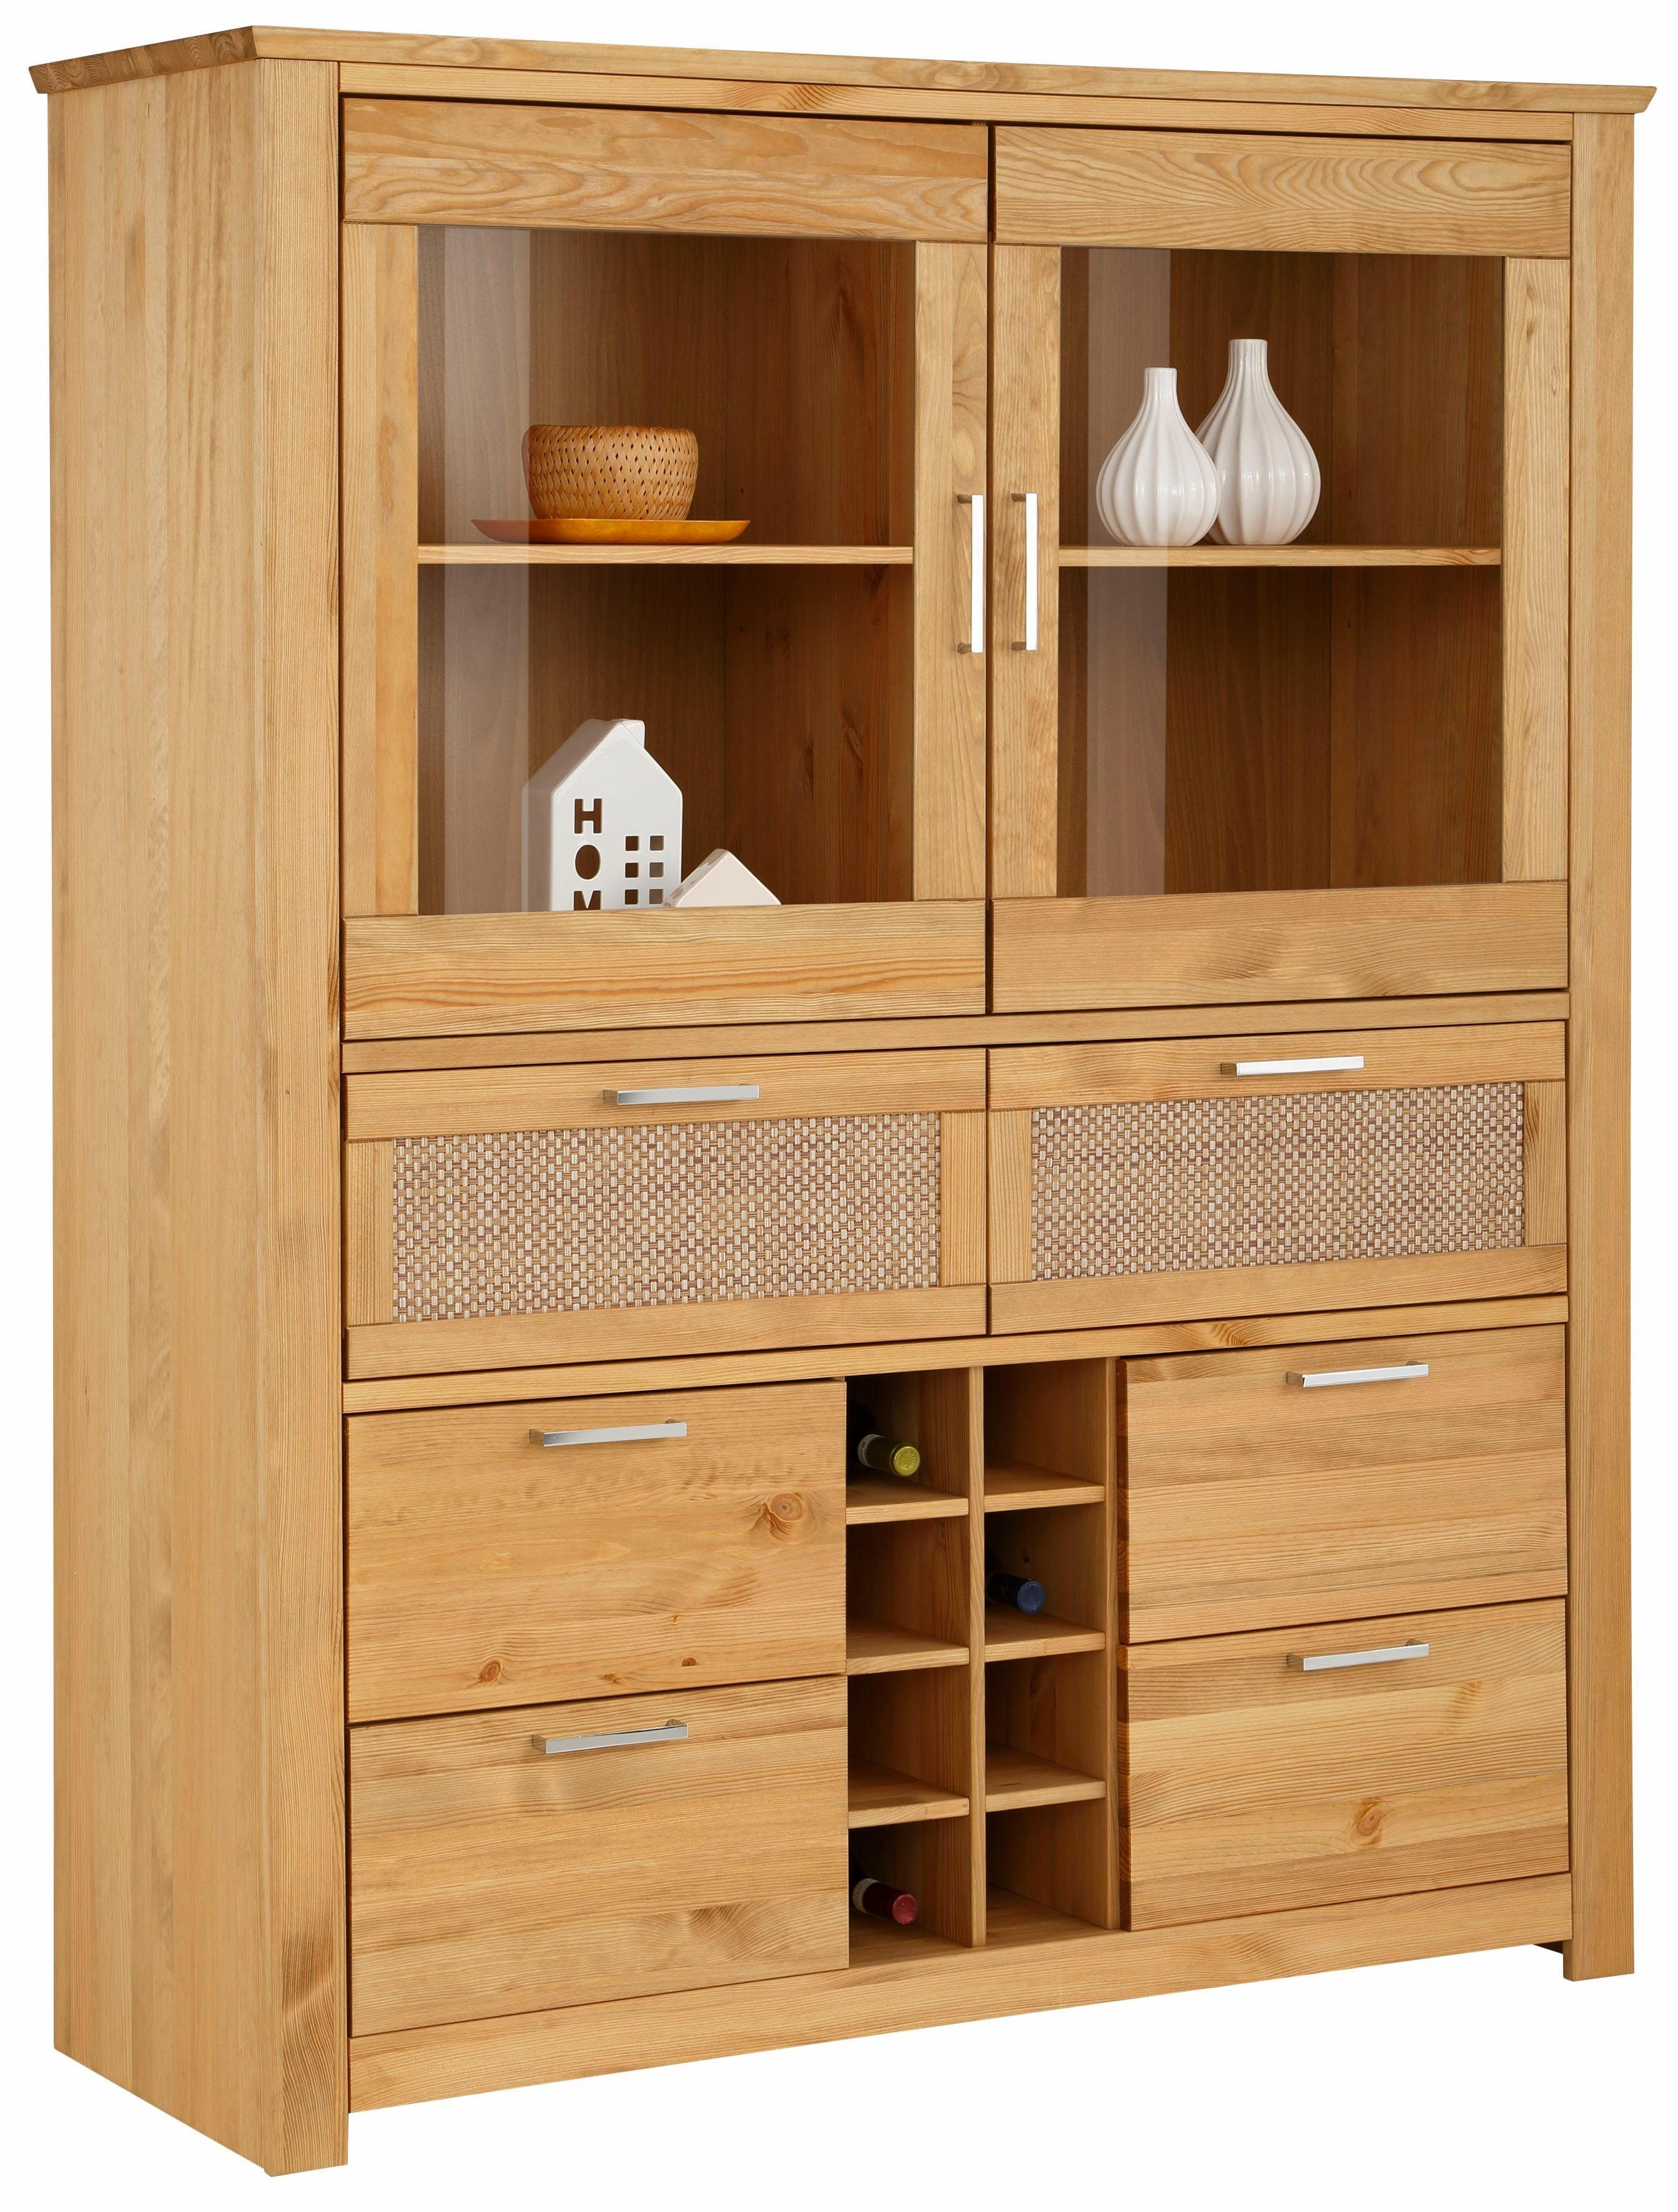 Home affaire Highboard »Carro« mit Rattan Front, Breite 143 cm